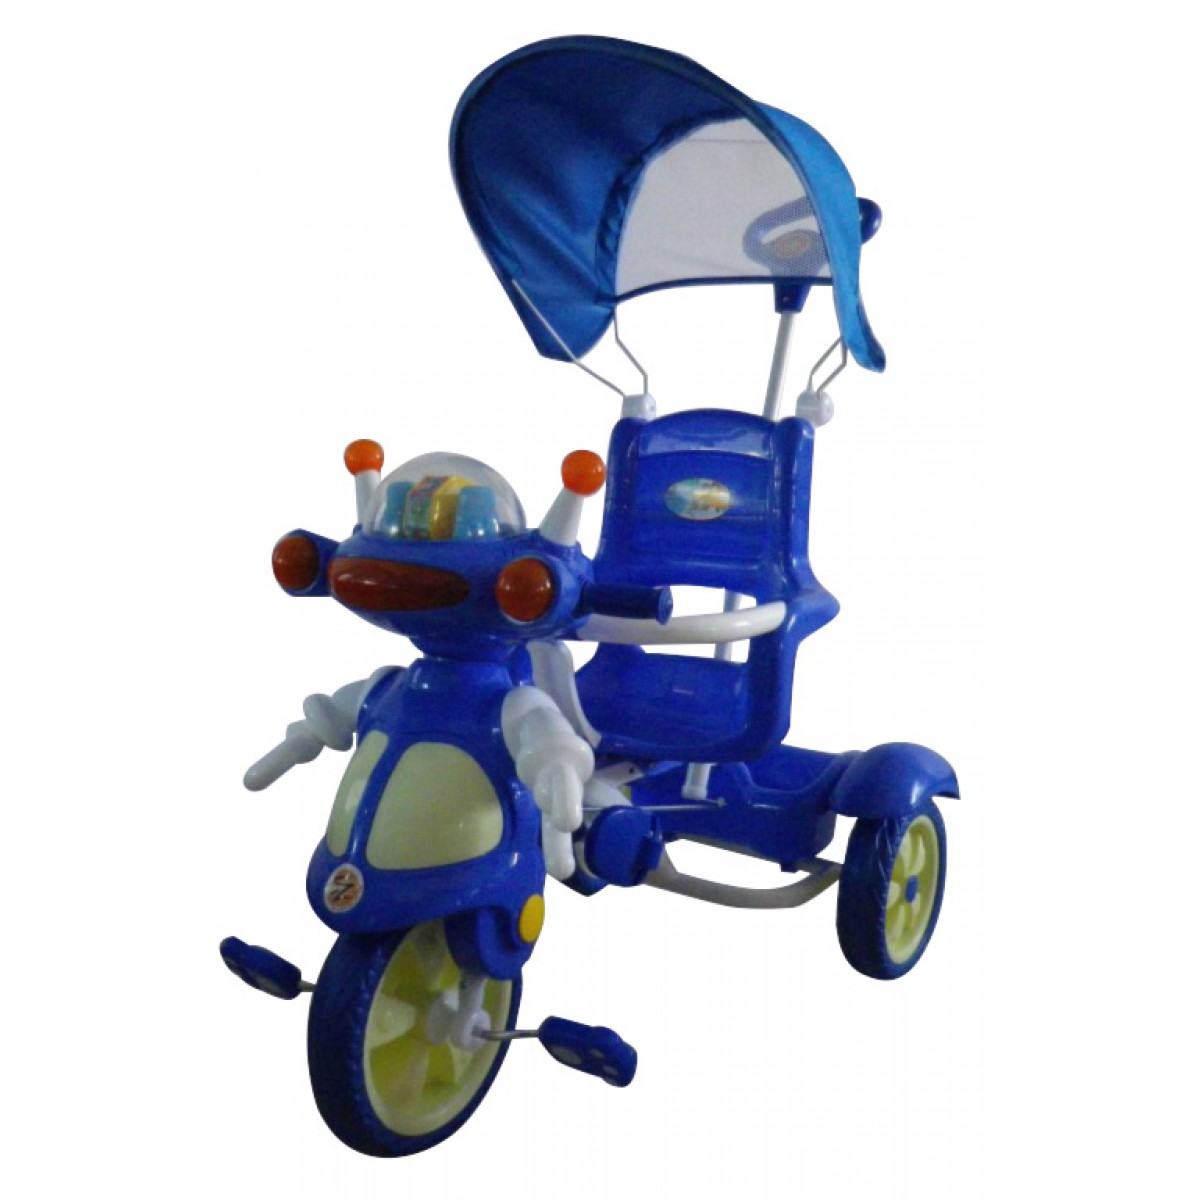 ez playmates deluxe robot tricycle 2016 red